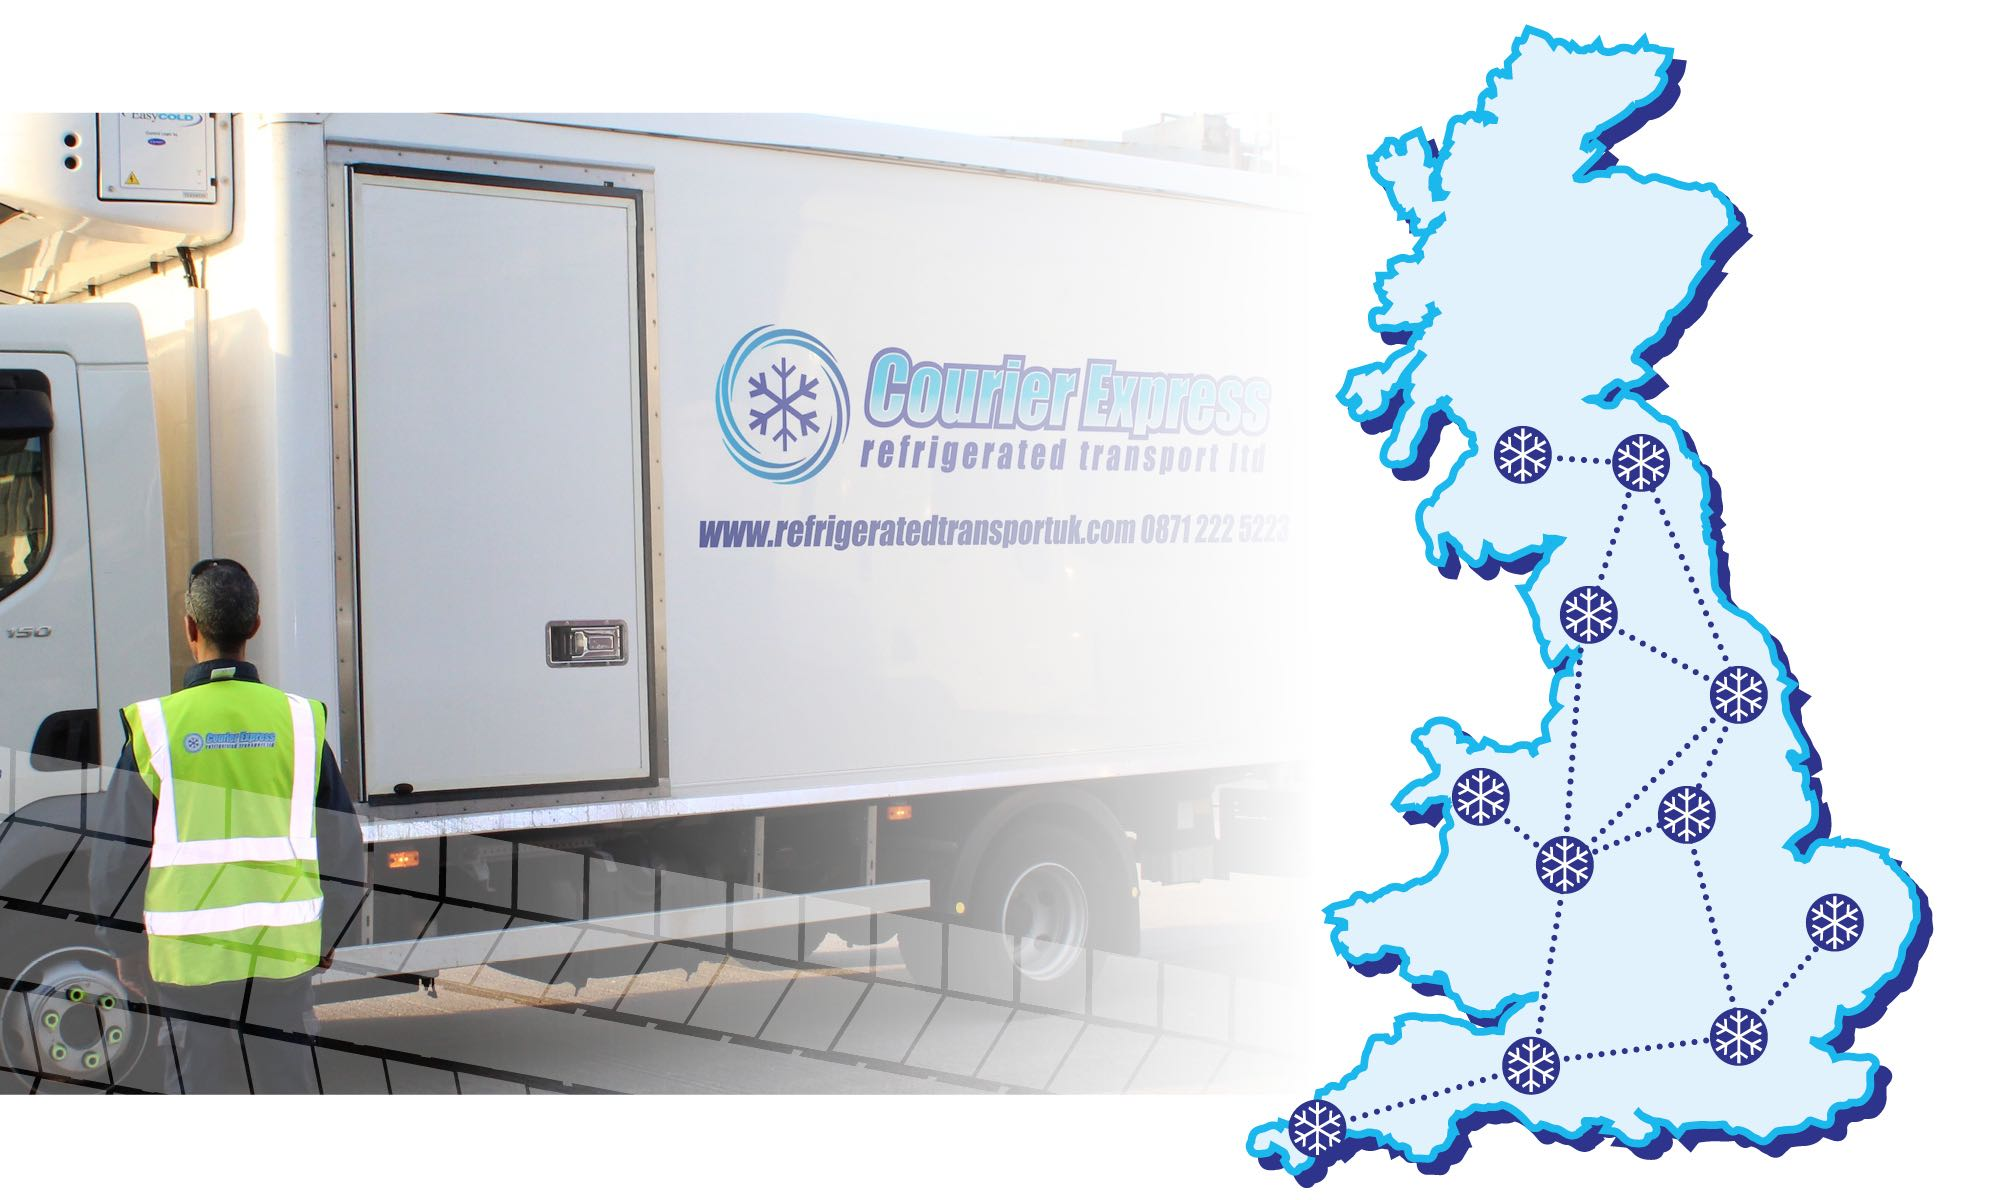 Courier Express | New UK locations